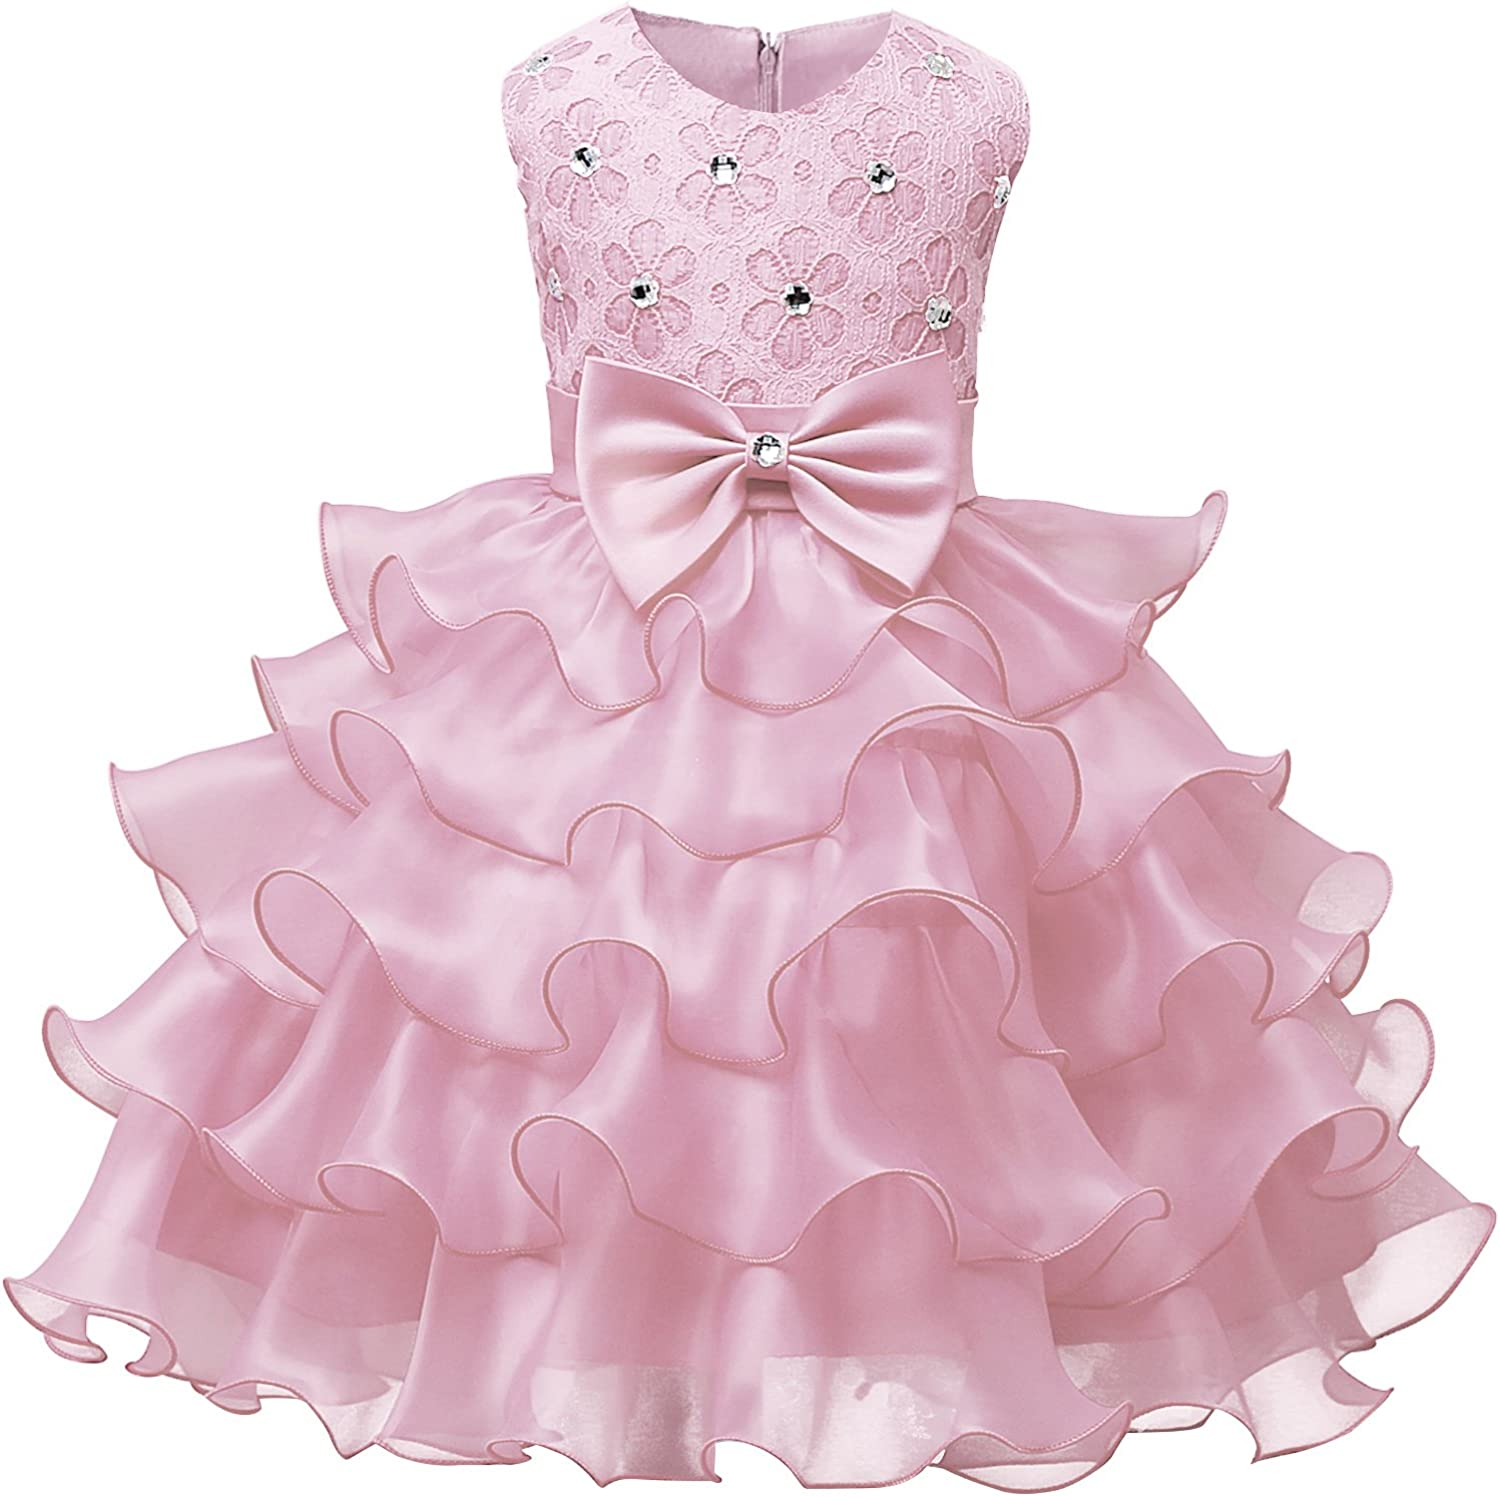 NNJXD Tampa Mall Girl Dress Kids Ruffles Lace Industry No. 1 Wedding Party Dresses